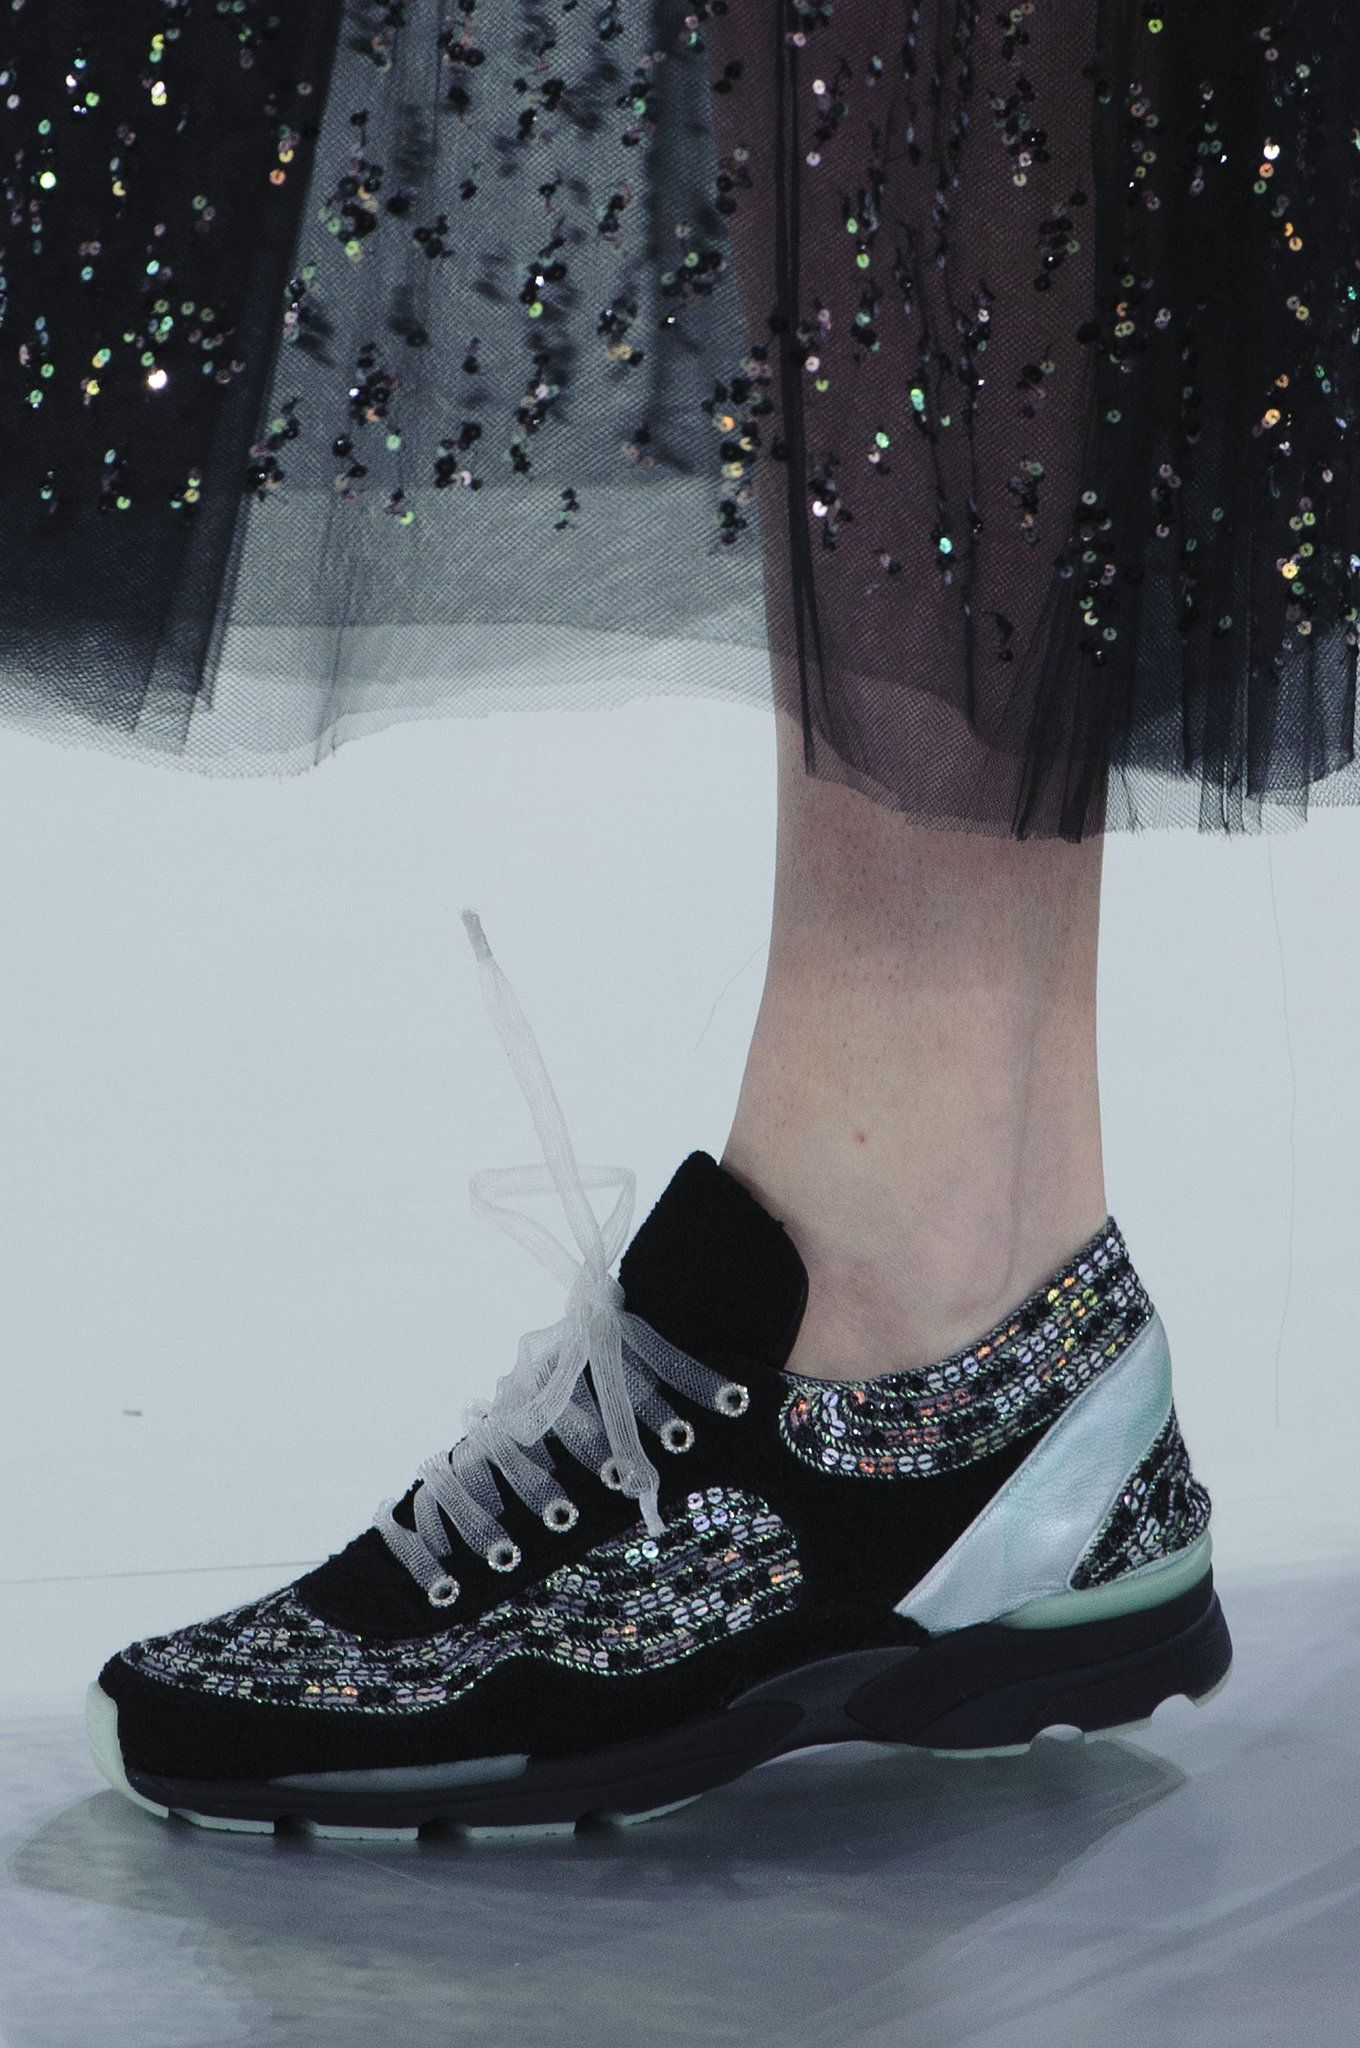 Chanel Haute Couture Spring 2014 - Kicked up sneakers are a huge trend this year!